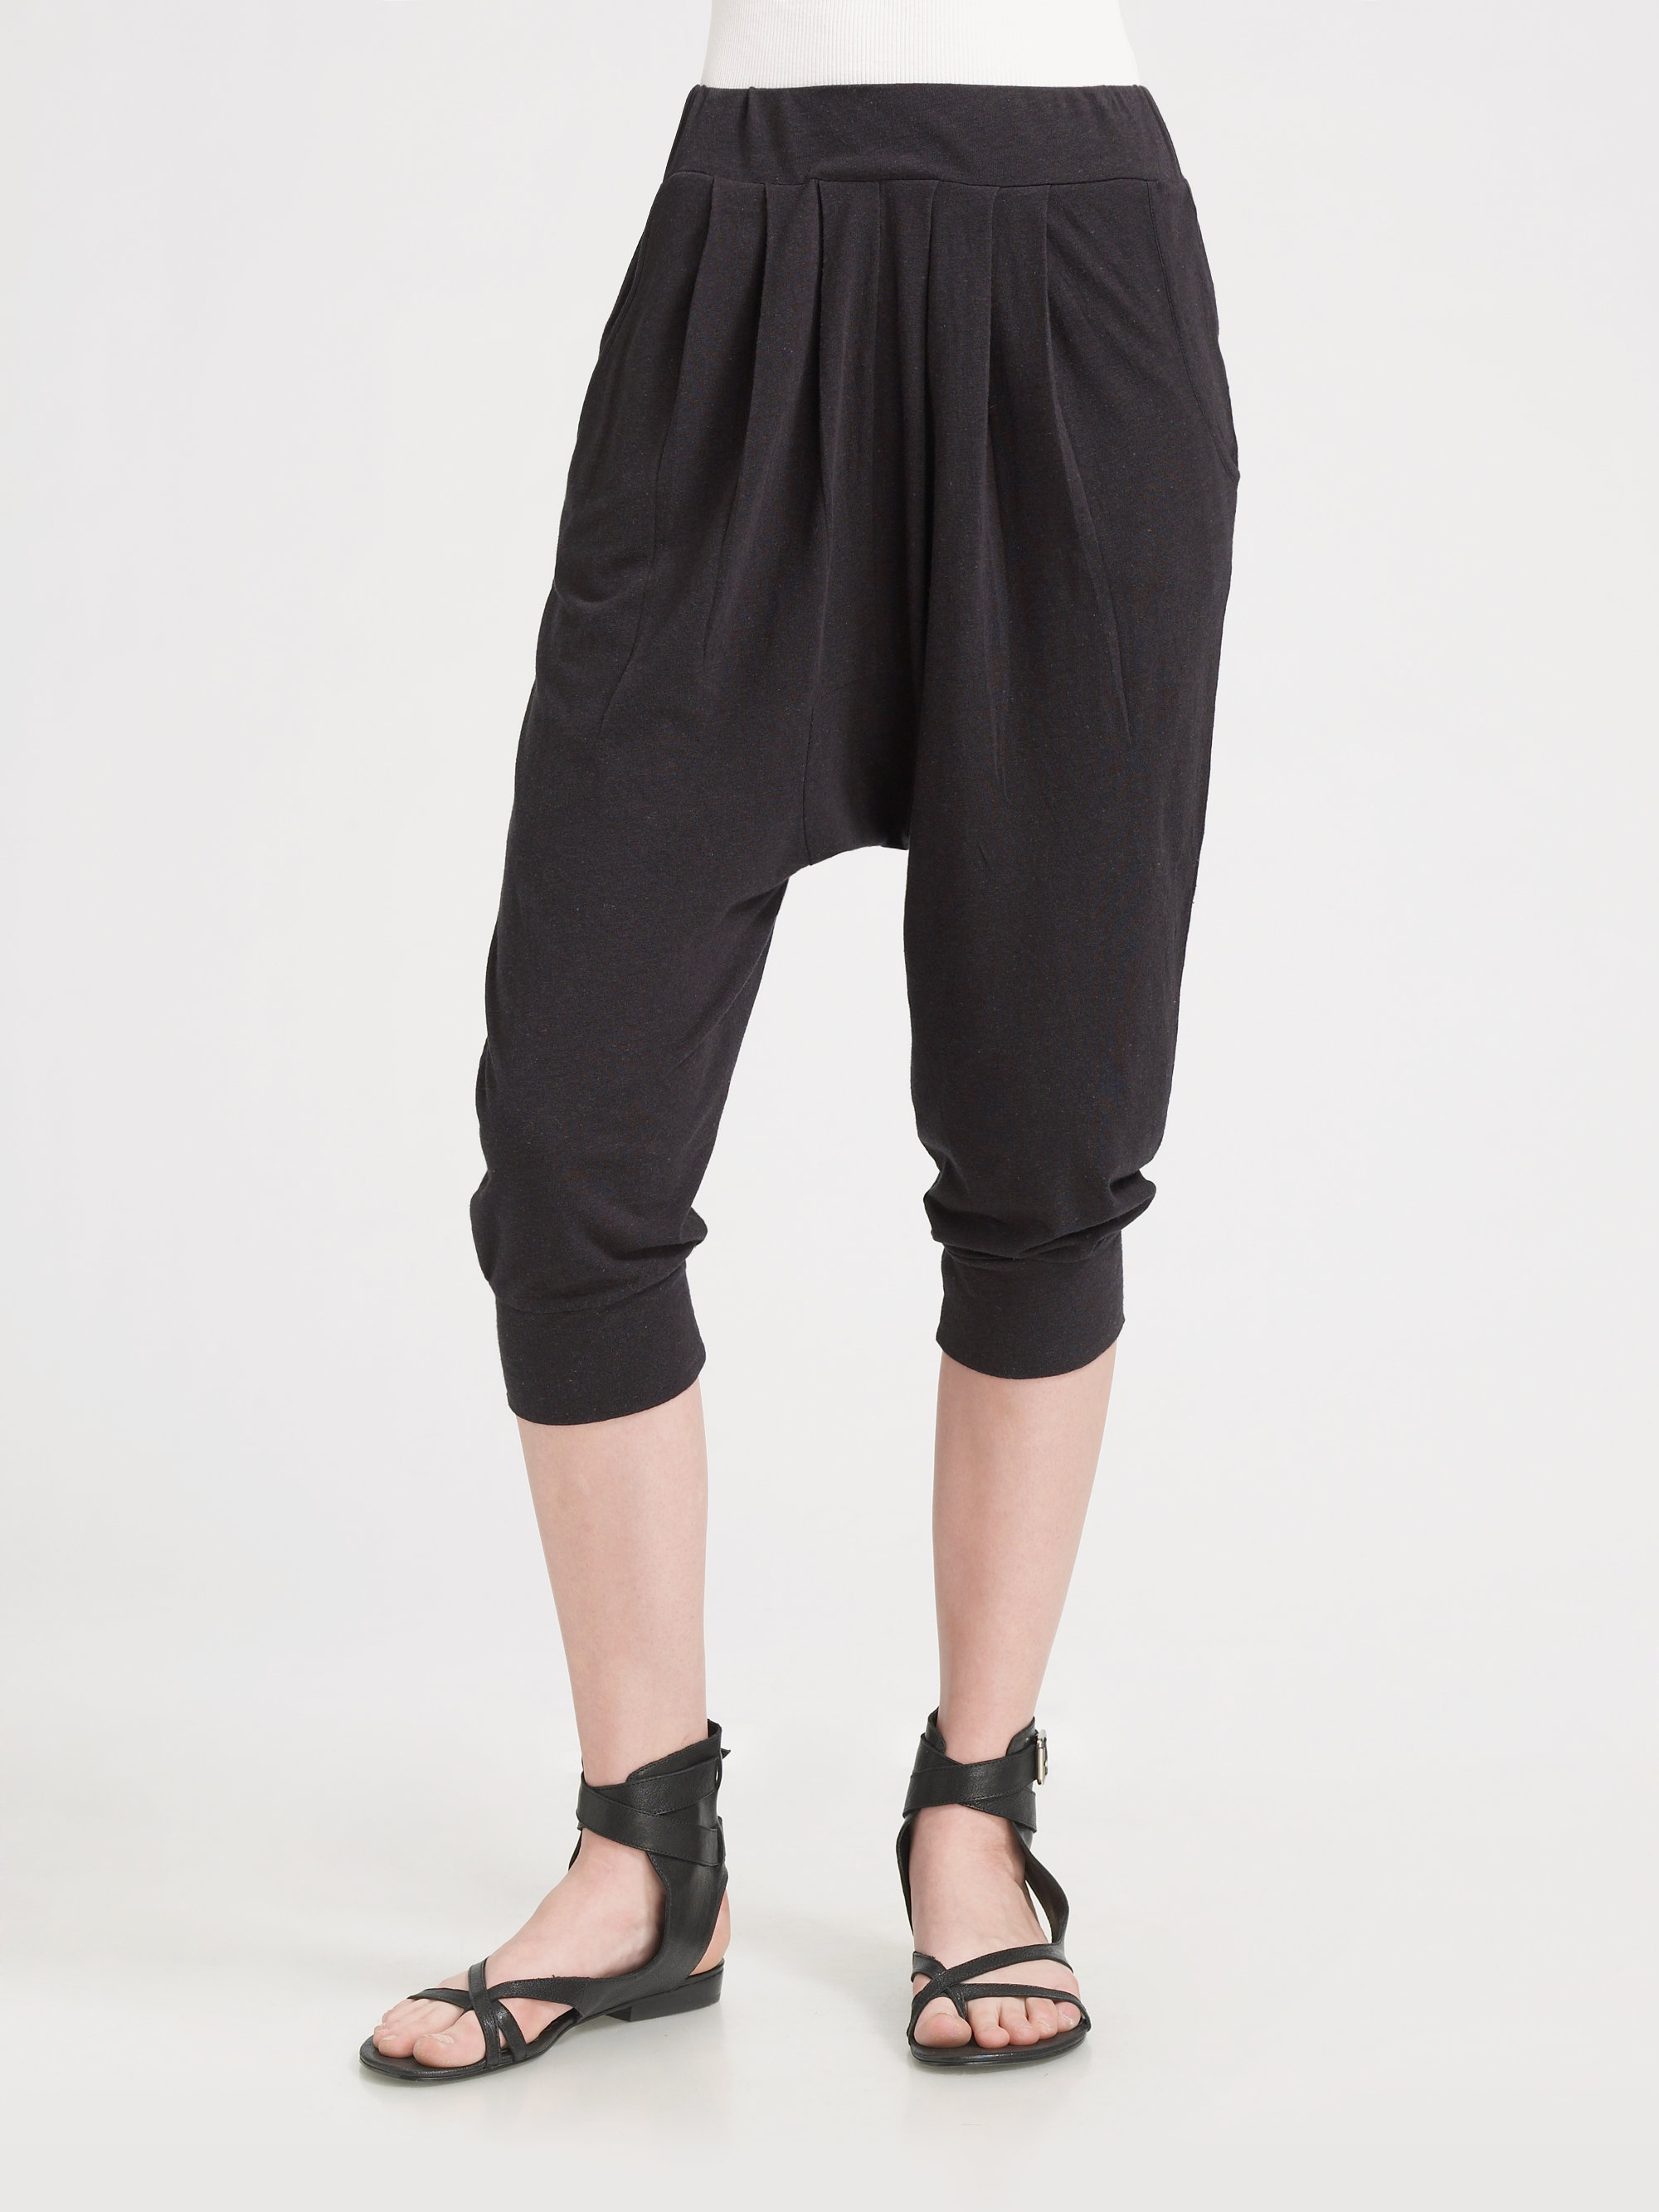 Free shipping on cropped & capri pants for women a smileqbl.gq Shop by rise, material, size and more from the best brands. Free shipping & returns.